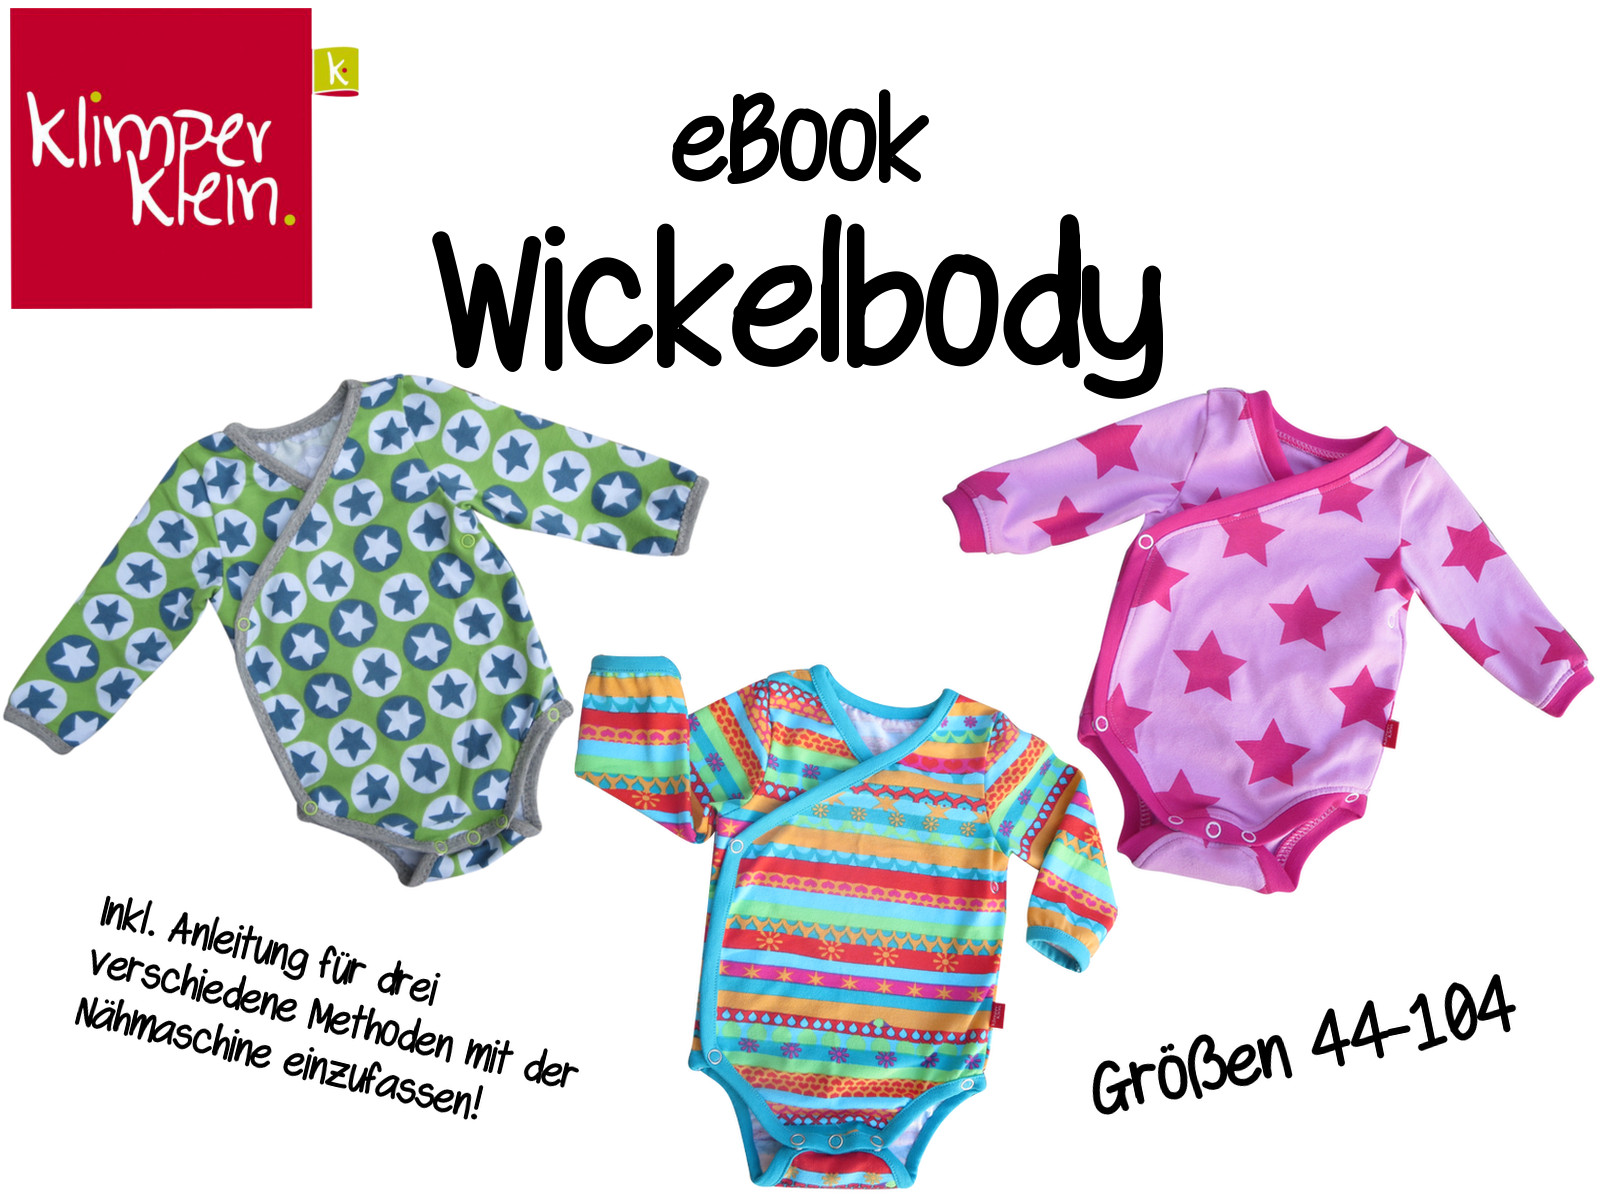 eBook Wickelbody online!